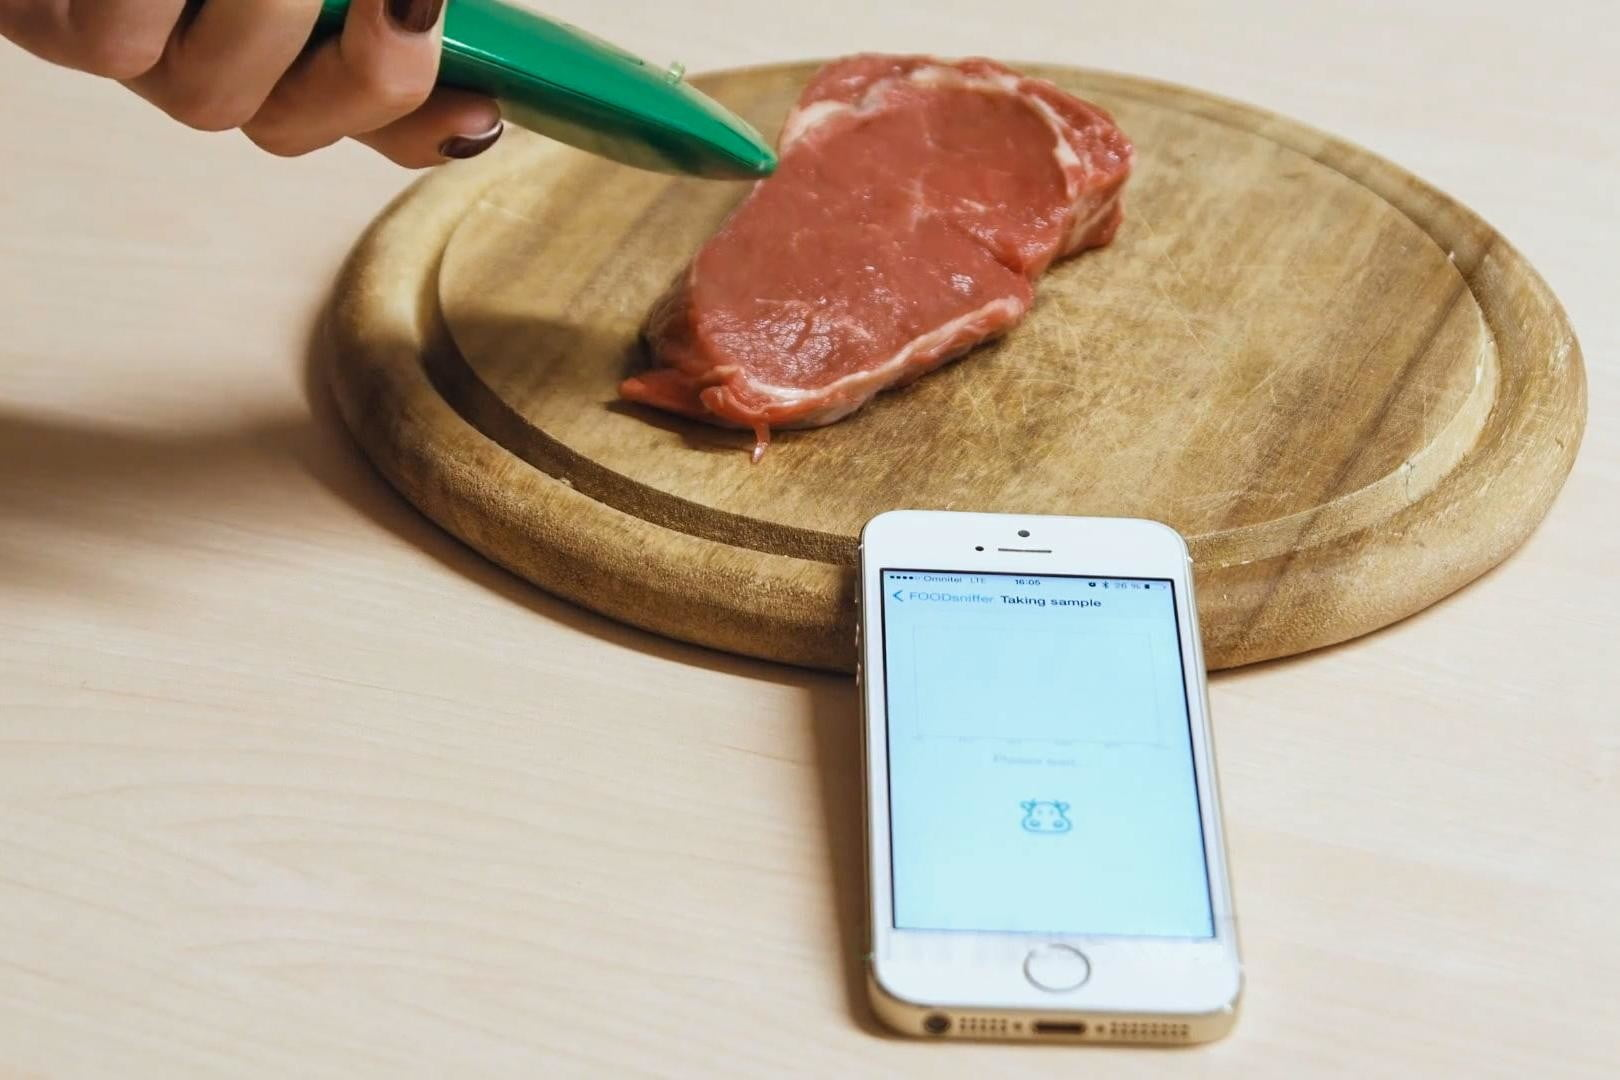 foodsniffer analyzes chemicals to detect food spoilage peres 1